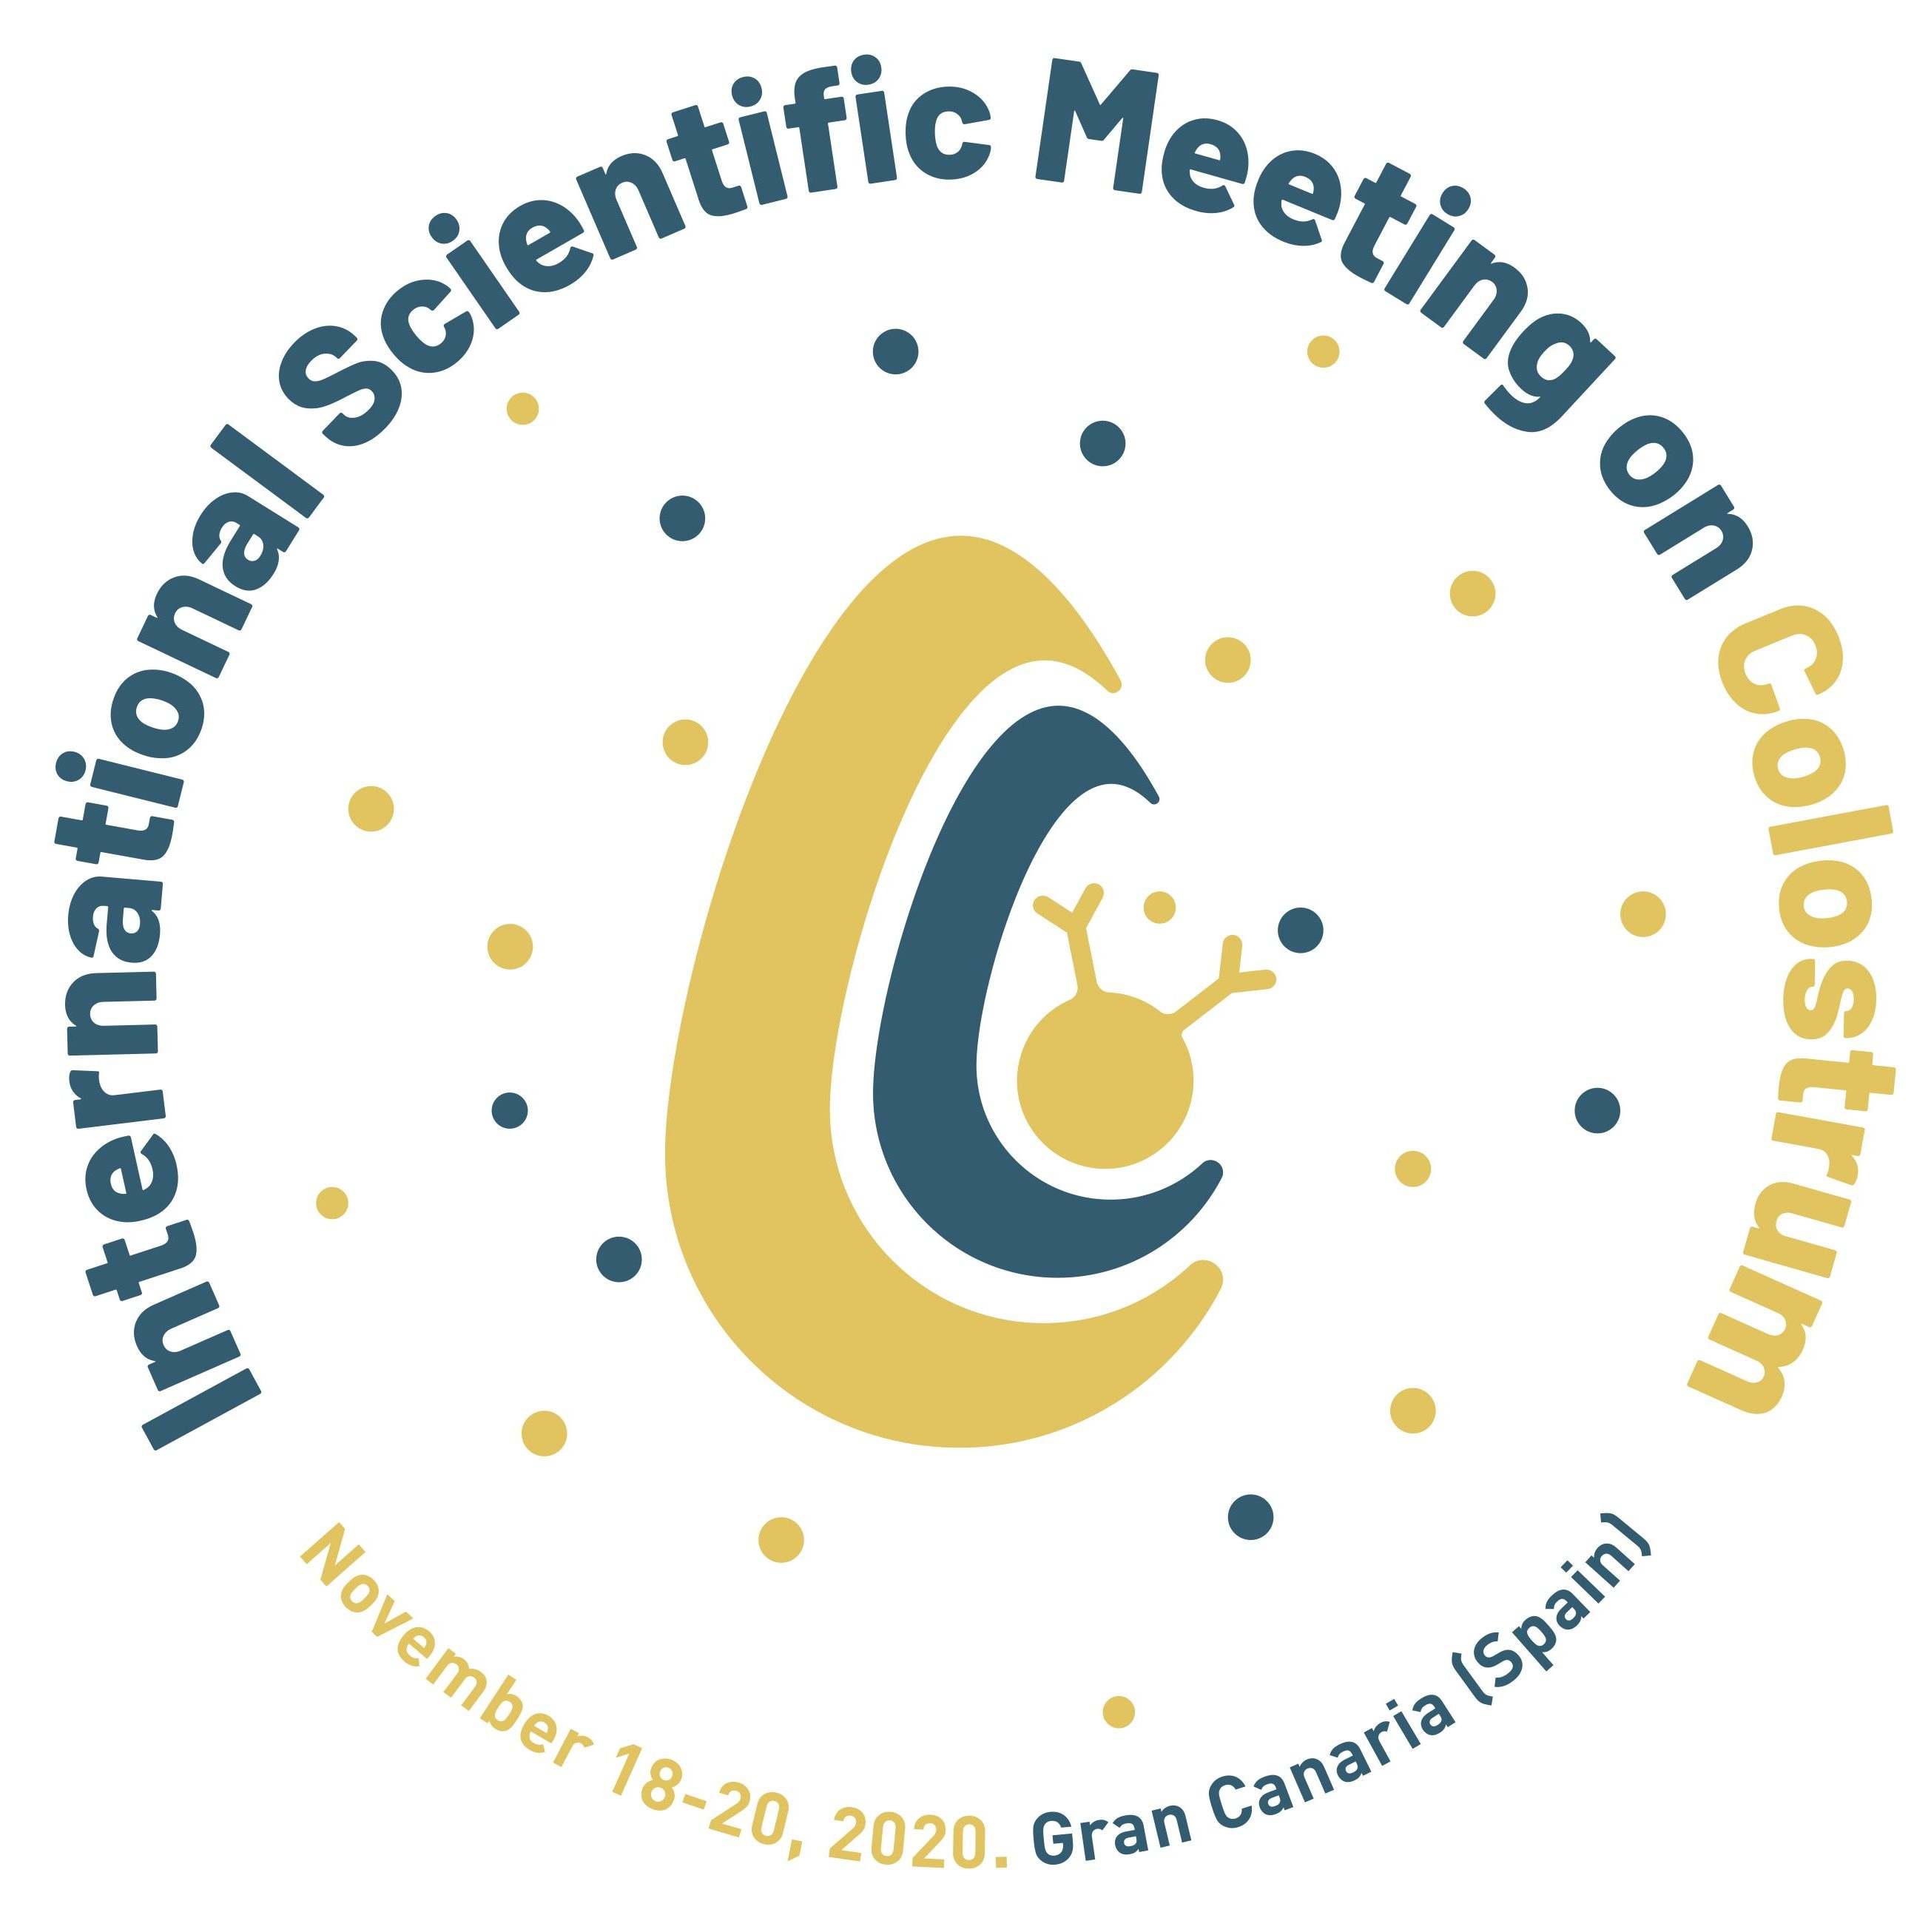 International Scientific Meeting on colostrum